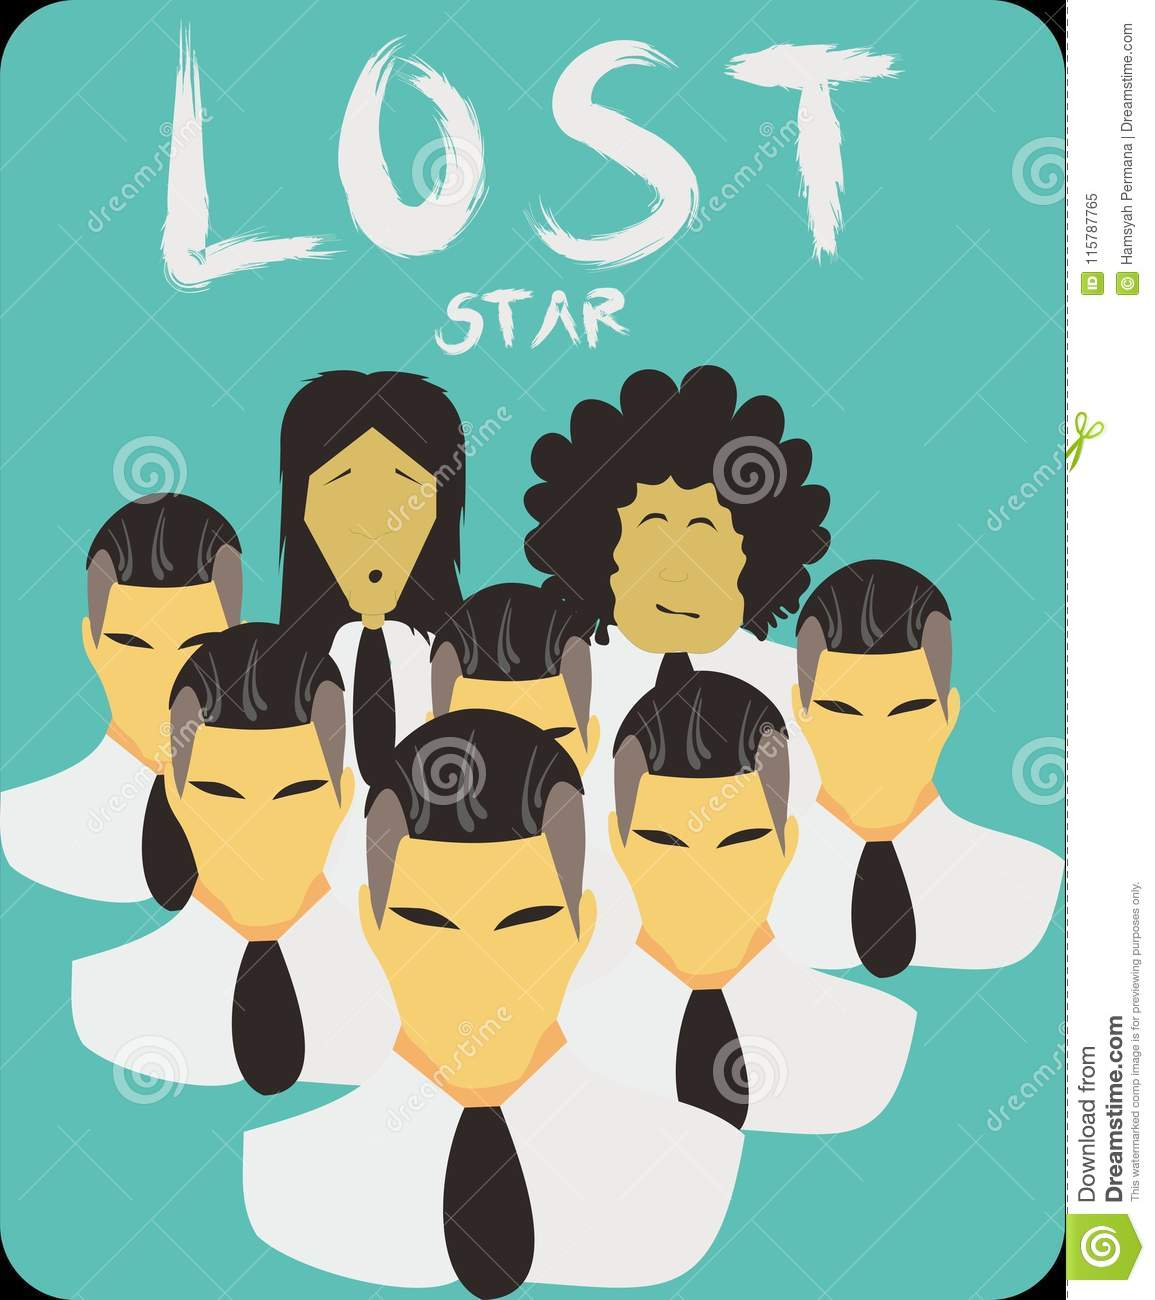 Lost Star When Your Style Make It Stuck In The Middle Know Where